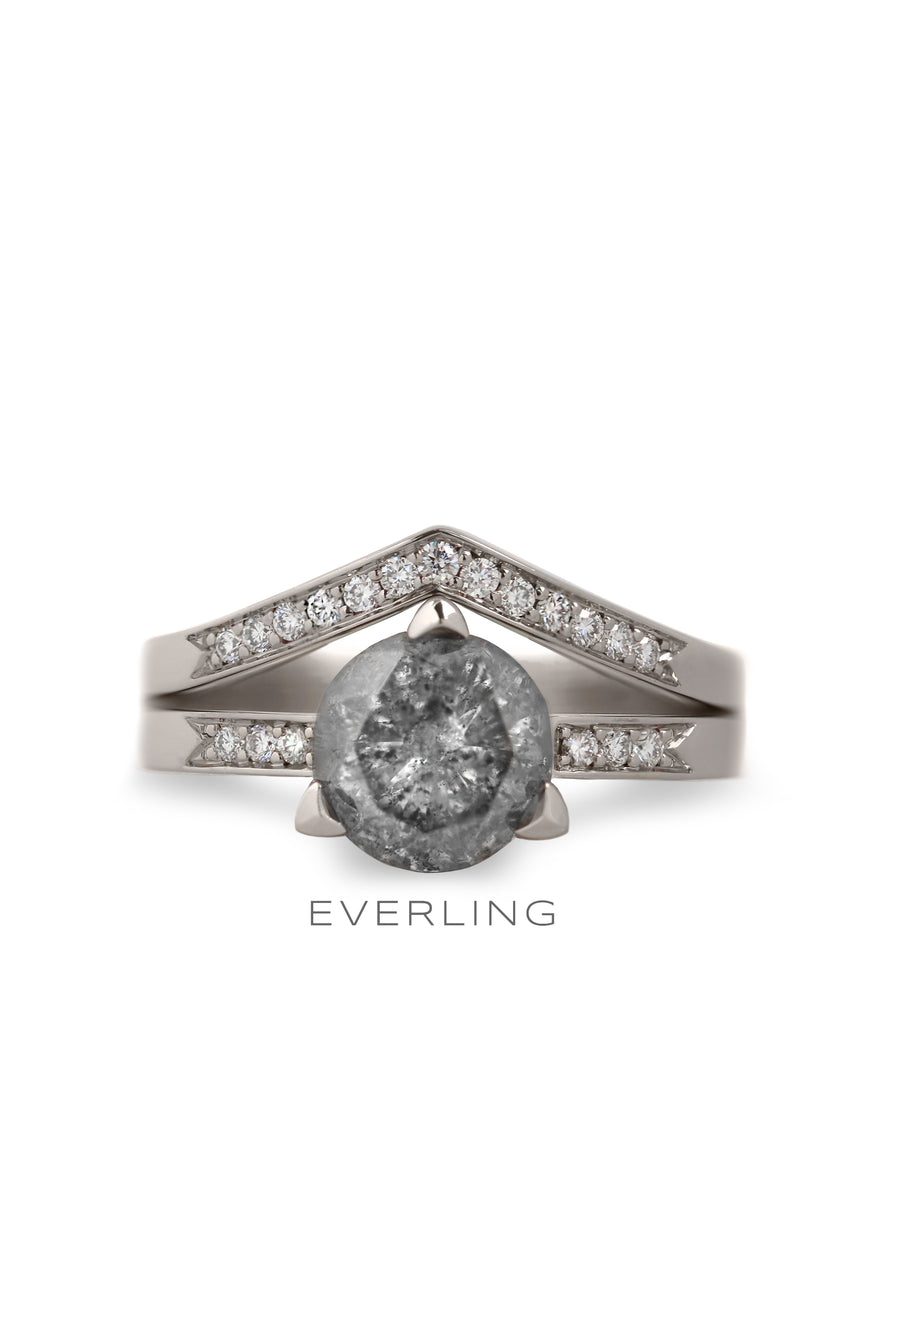 14k palladium white gold wedding set. www.EverlingJewelry.com